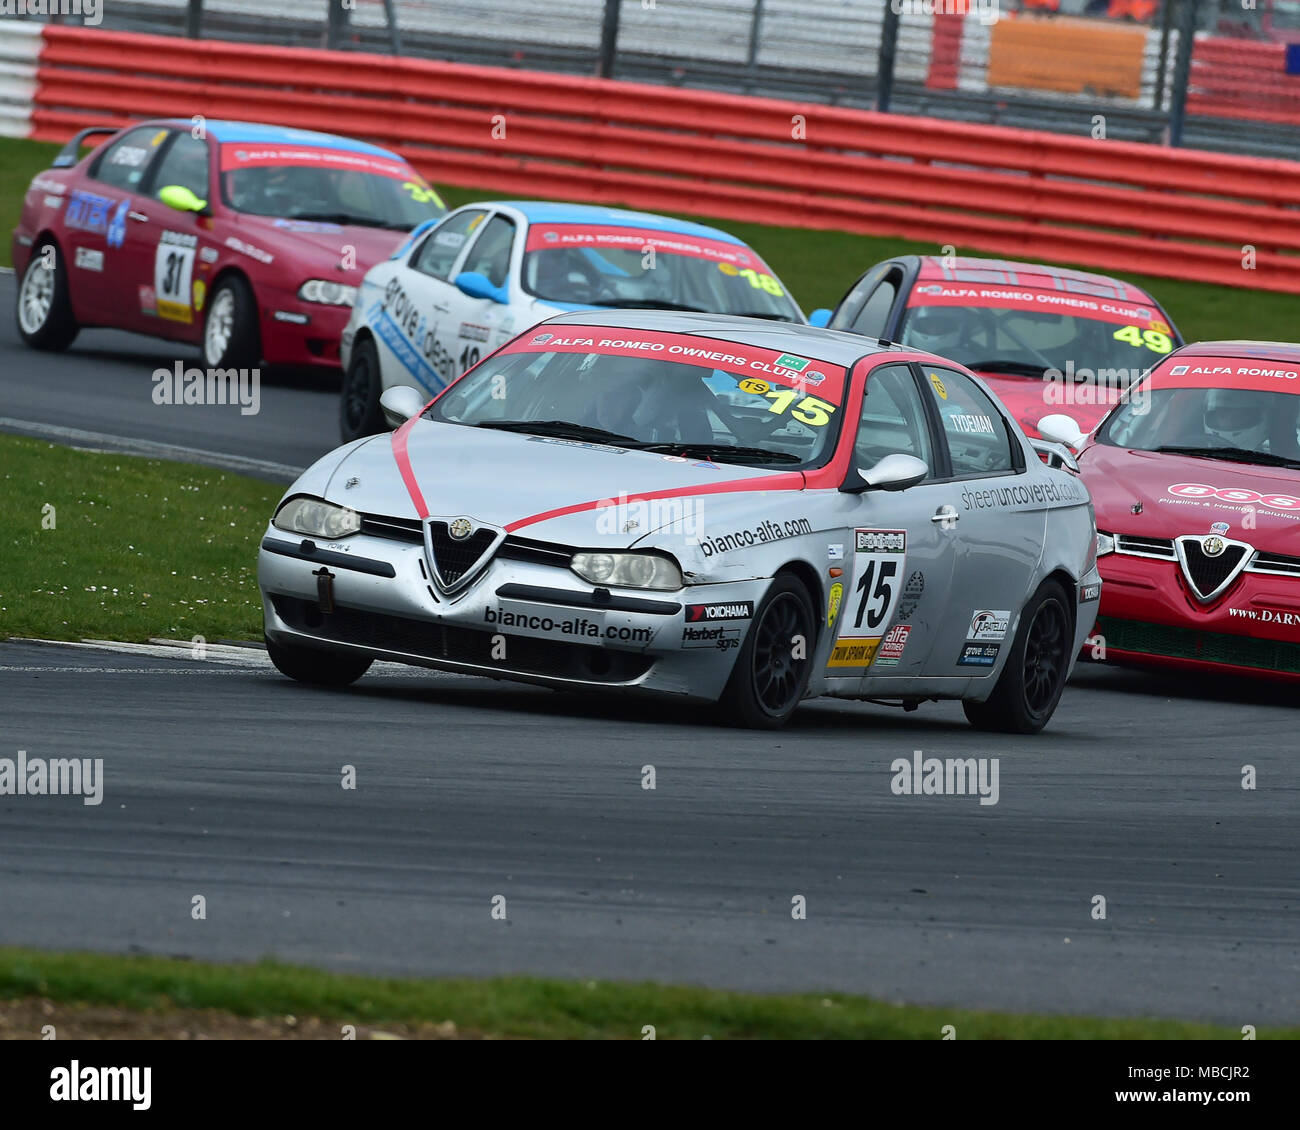 Silverstone, Towcester, Northamptonshire, England, Sunday 1st April ...